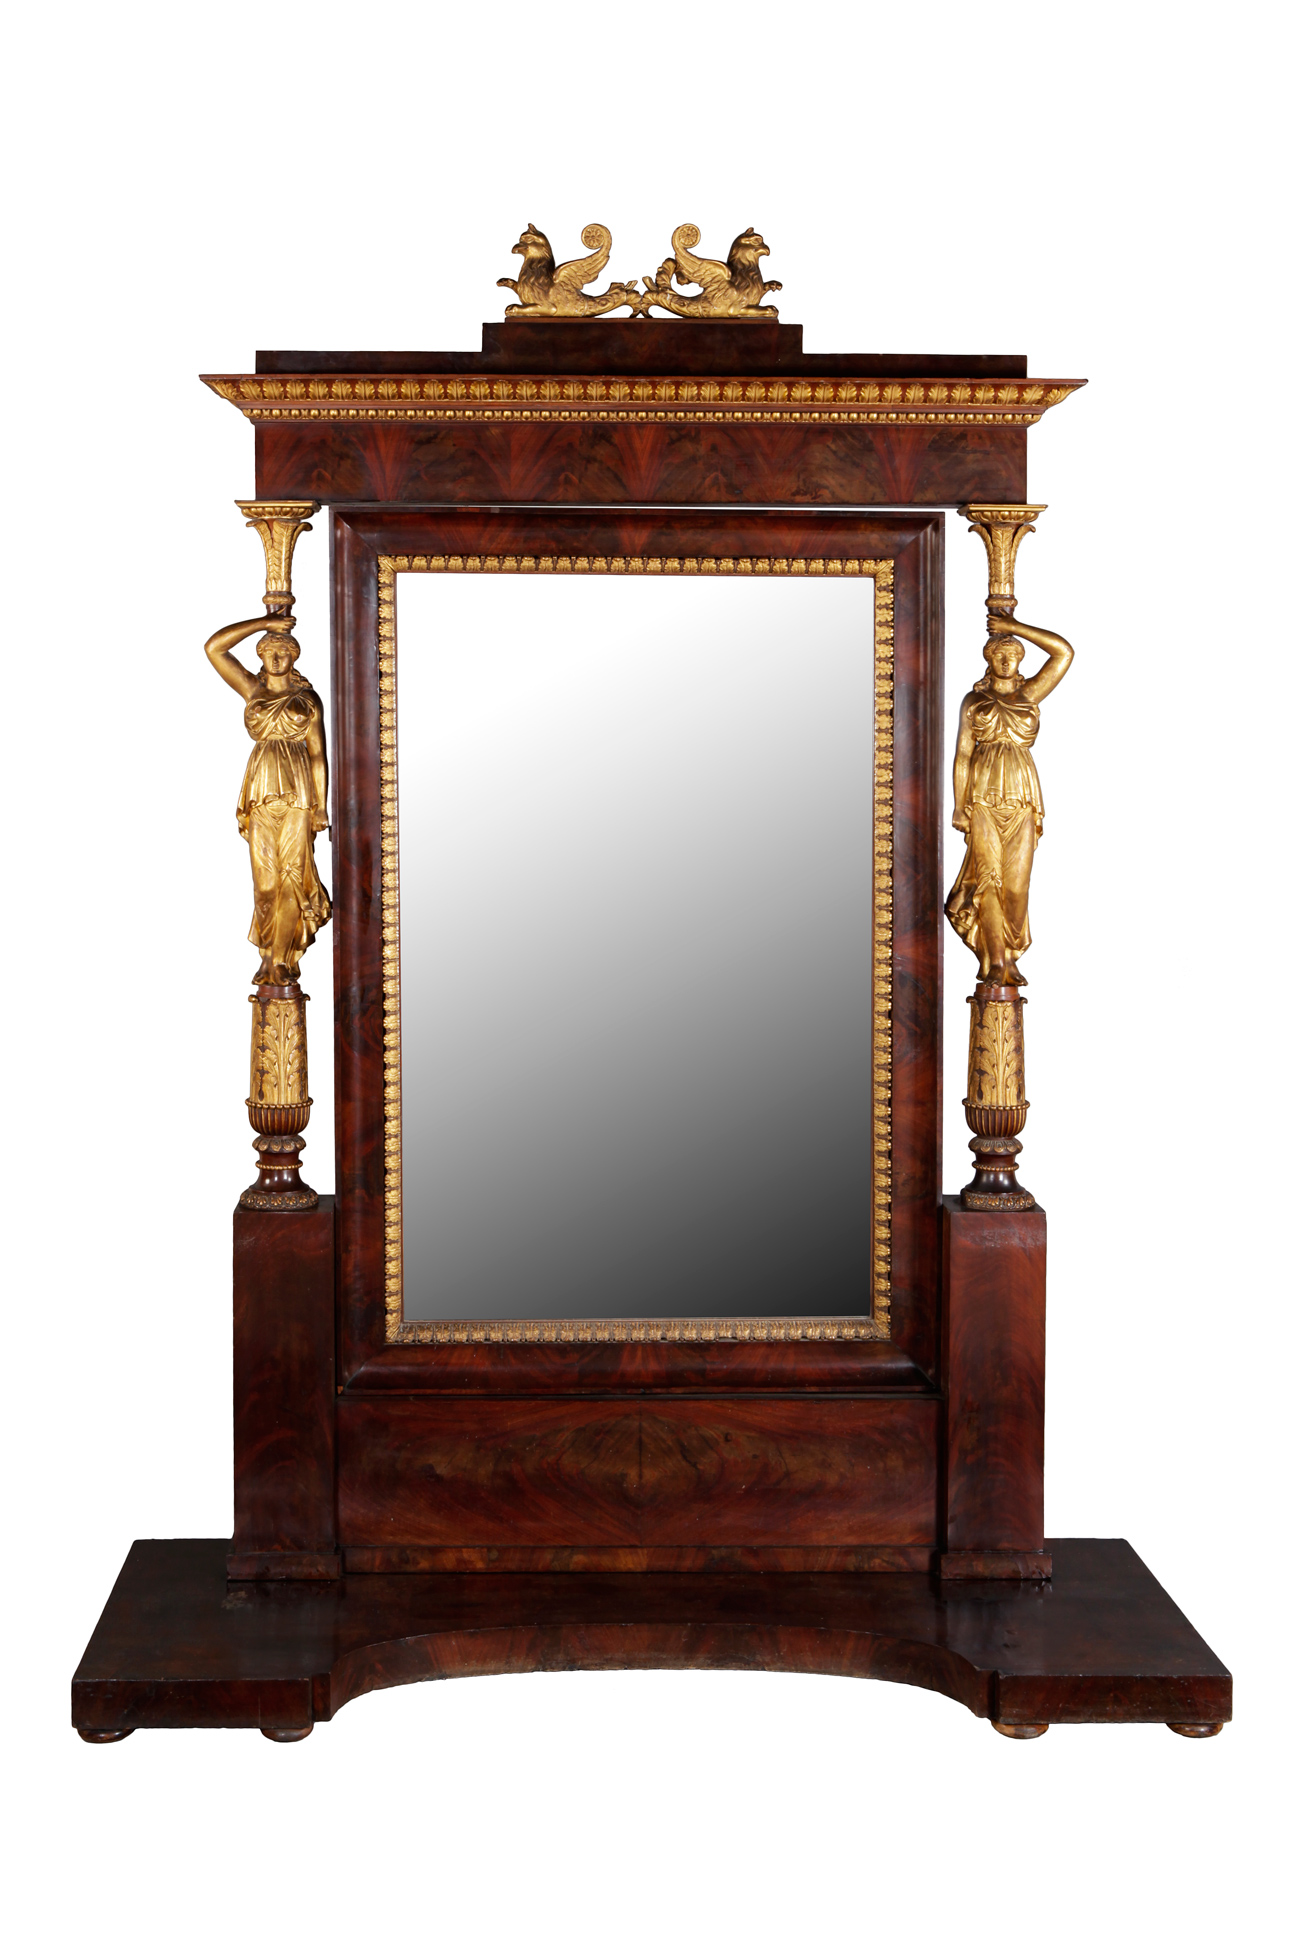 Empire style mirror, Spain, ca.1820.